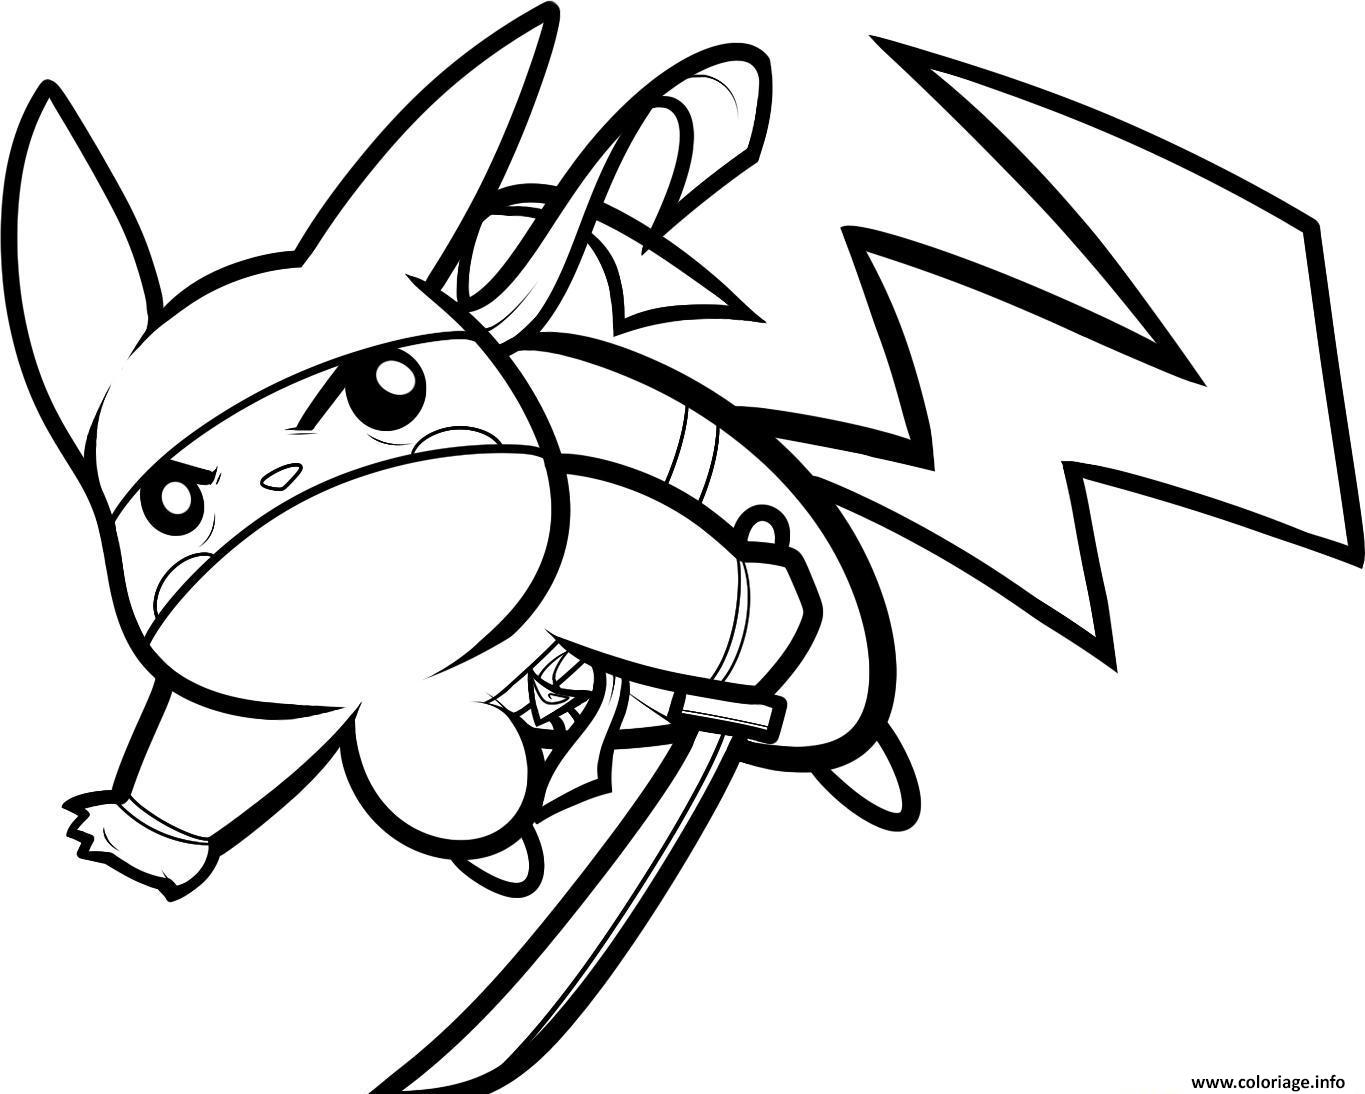 Coloriage pikachu en mode ninja pokemon - Dessin anime ninja ...